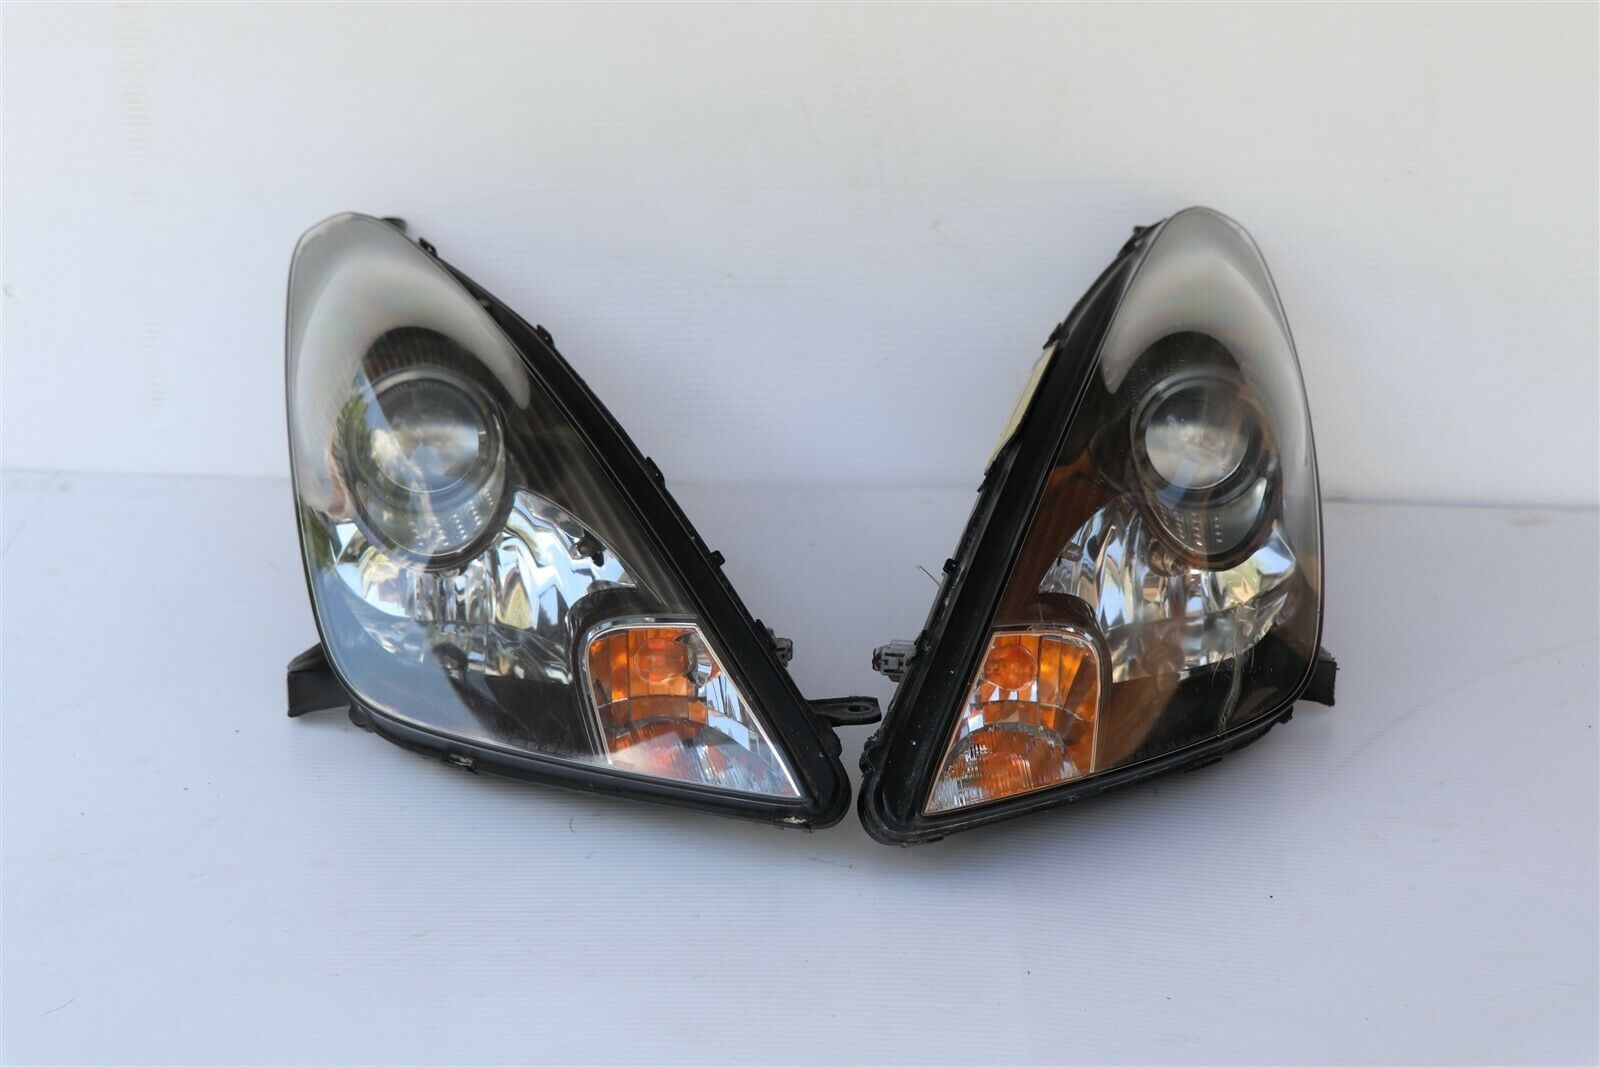 00-05 Toyota Celica HID Xenon Headlight Lamp Matching Set Pair L&R - POLISHED